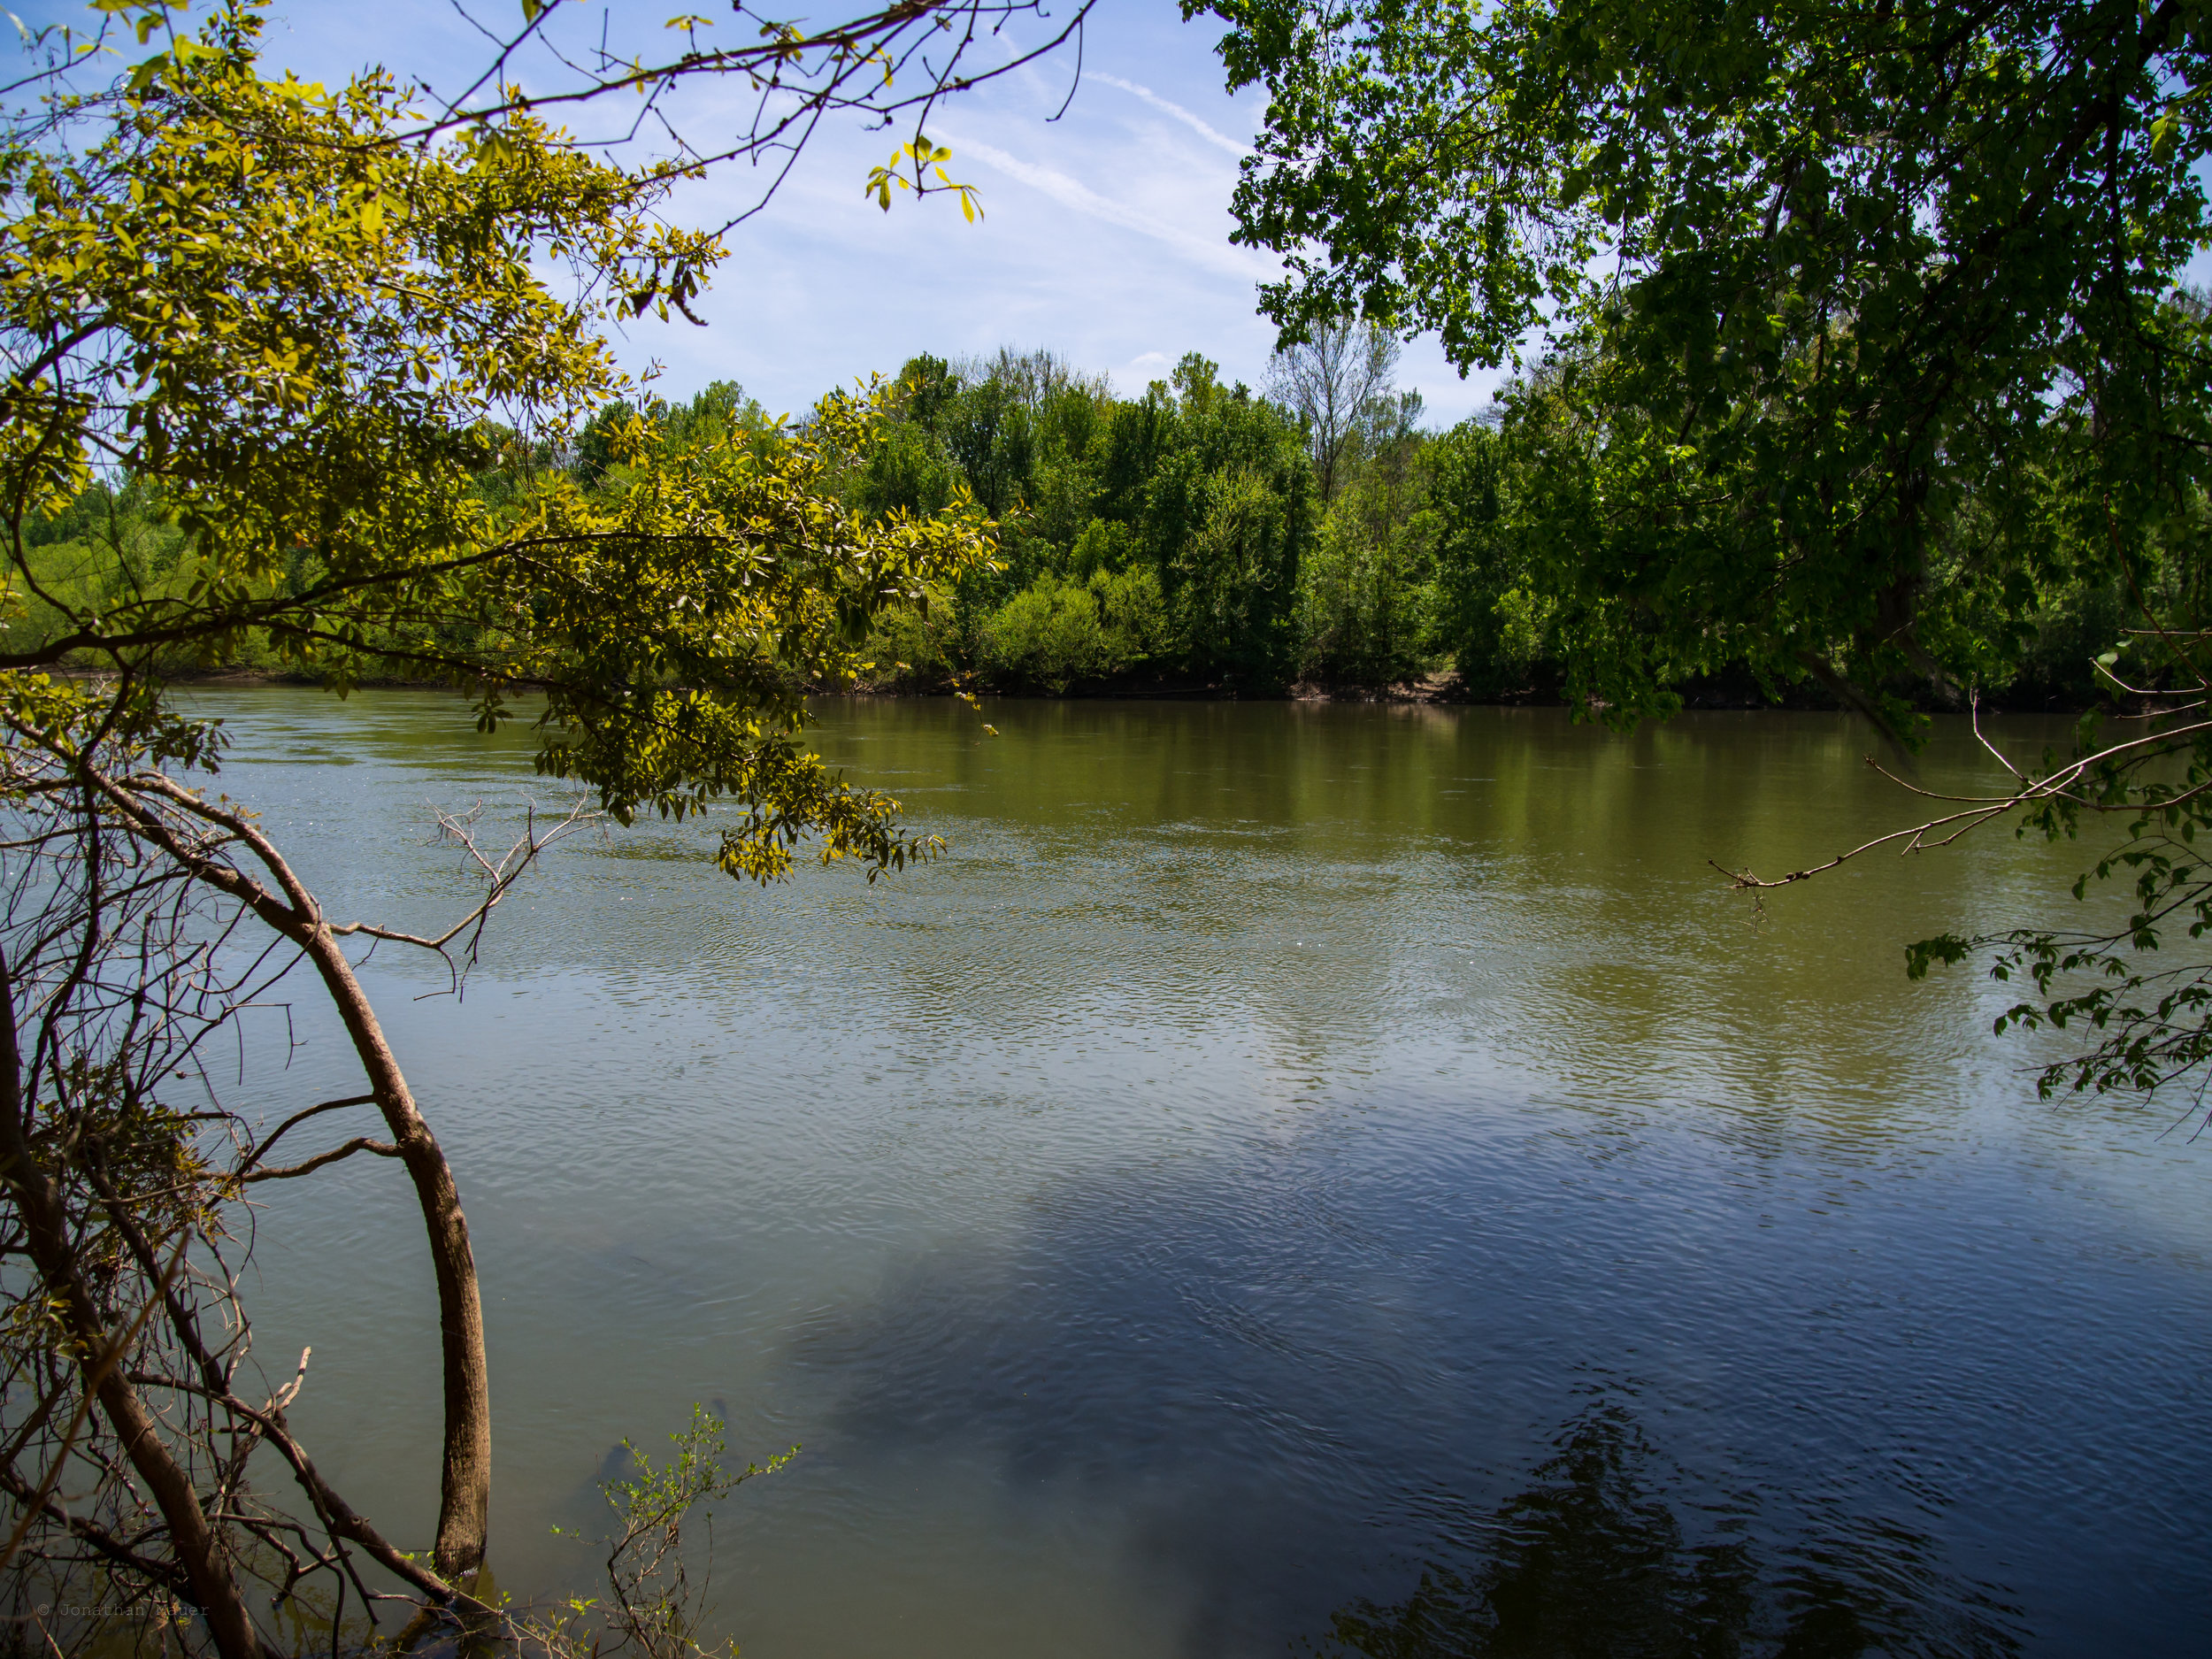 The Congaree River along the River Trail